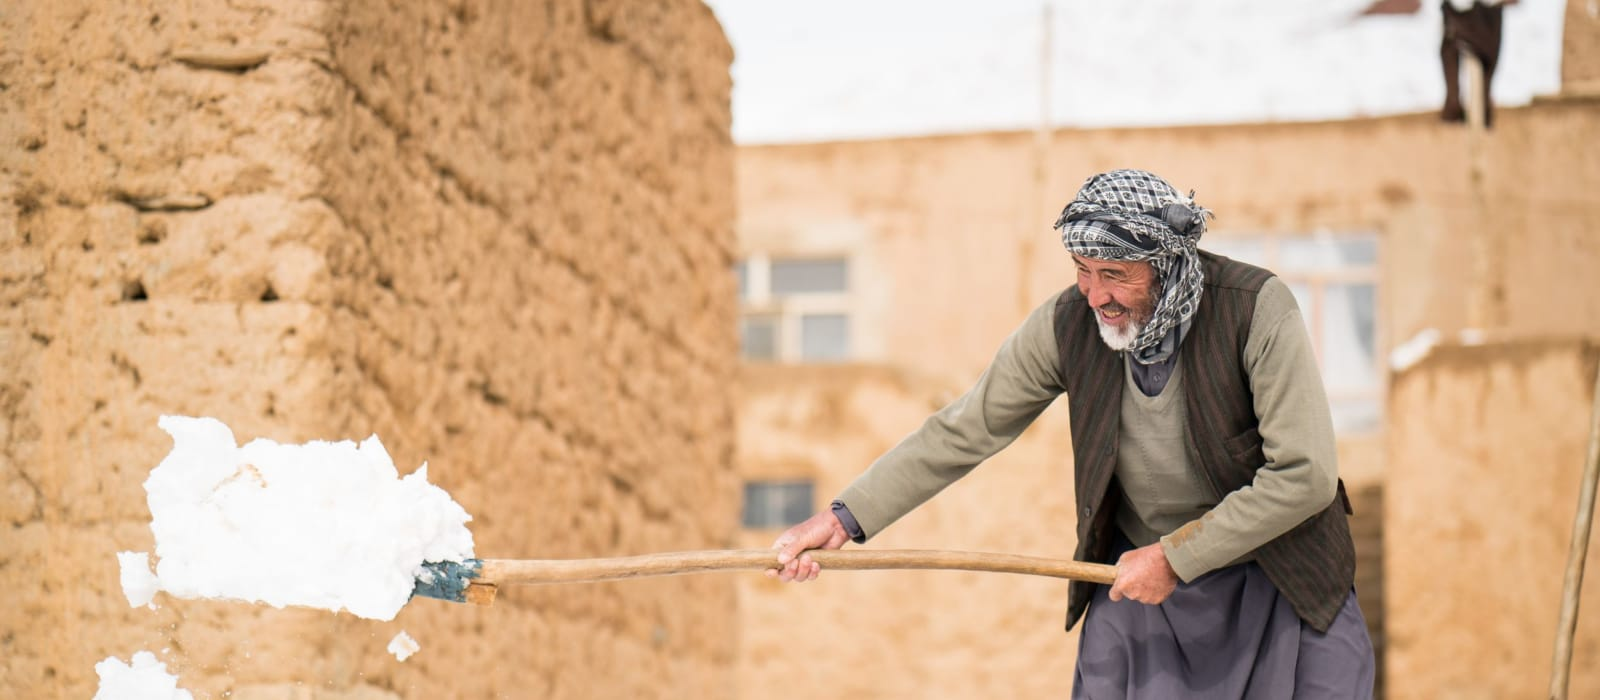 Afghanaid and the UN help families prepare for the harsh winter